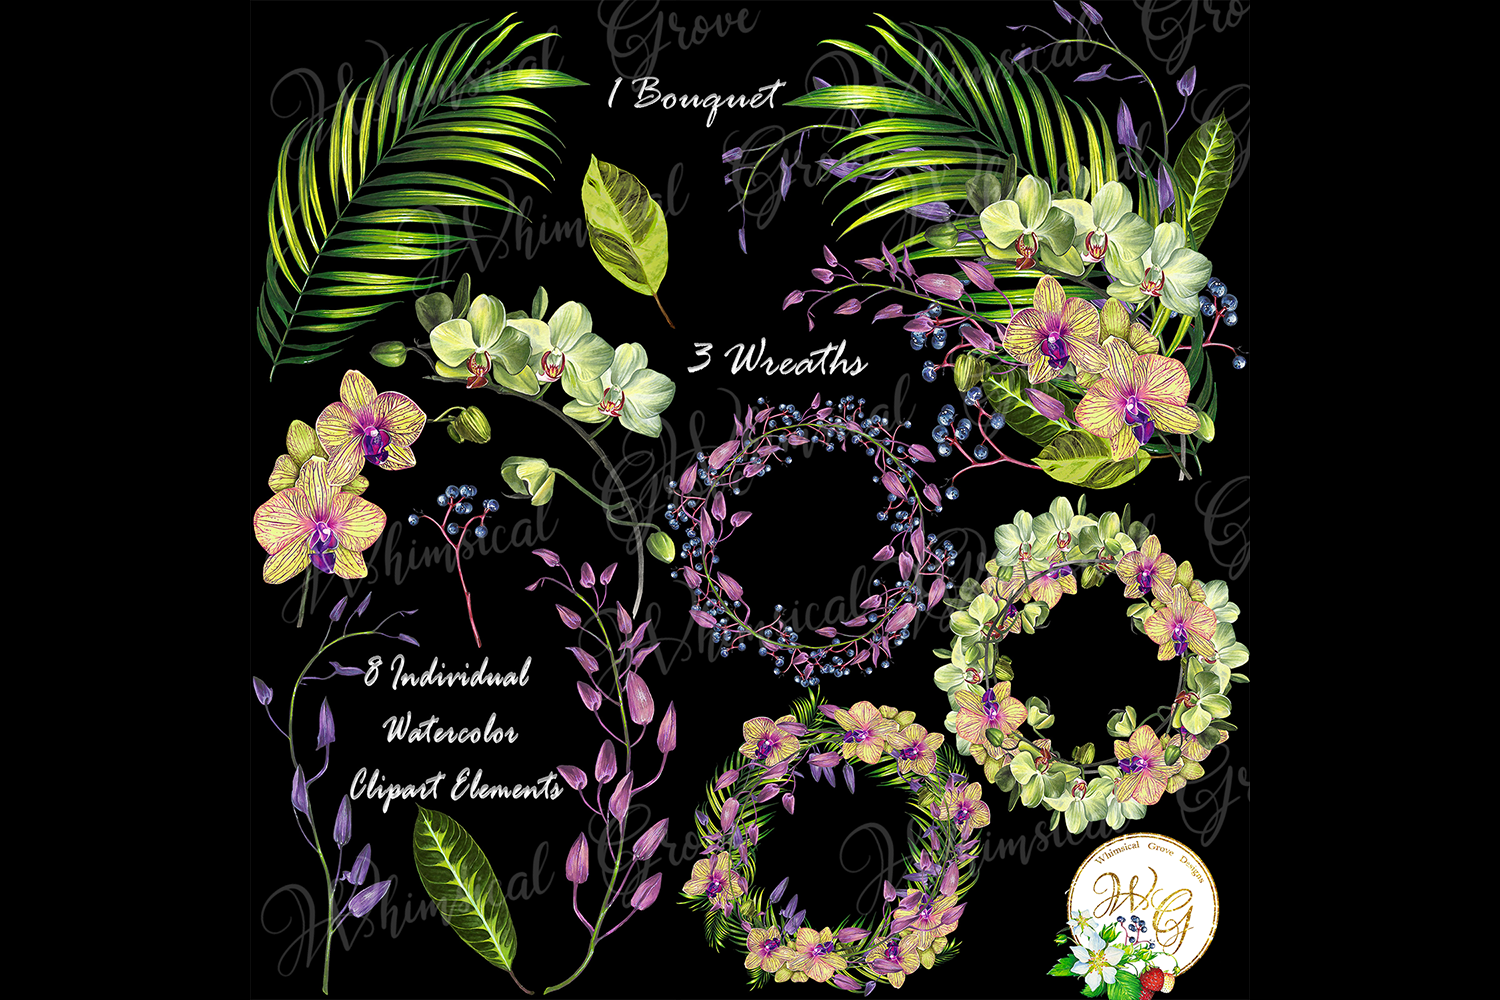 Orchid set 12 watercolor handpainted clipart, floral, wreath example image 2